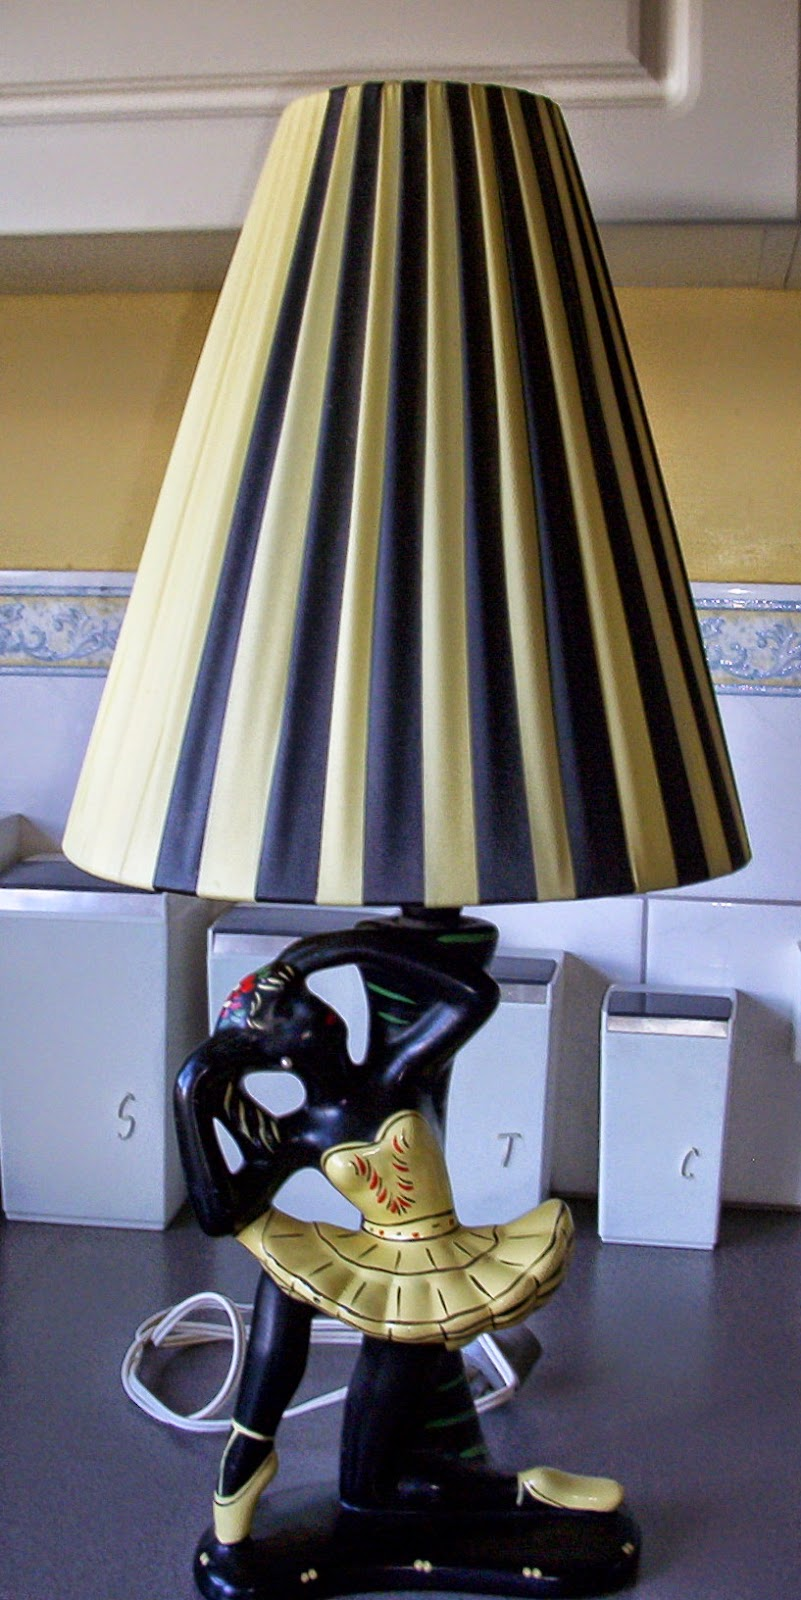 Merlene fawdry pre release information how to make barsony this simple how to guide for making plastic ribbon lamp shades for retro lamp bases tells you where to source materials and gives step by step aloadofball Image collections